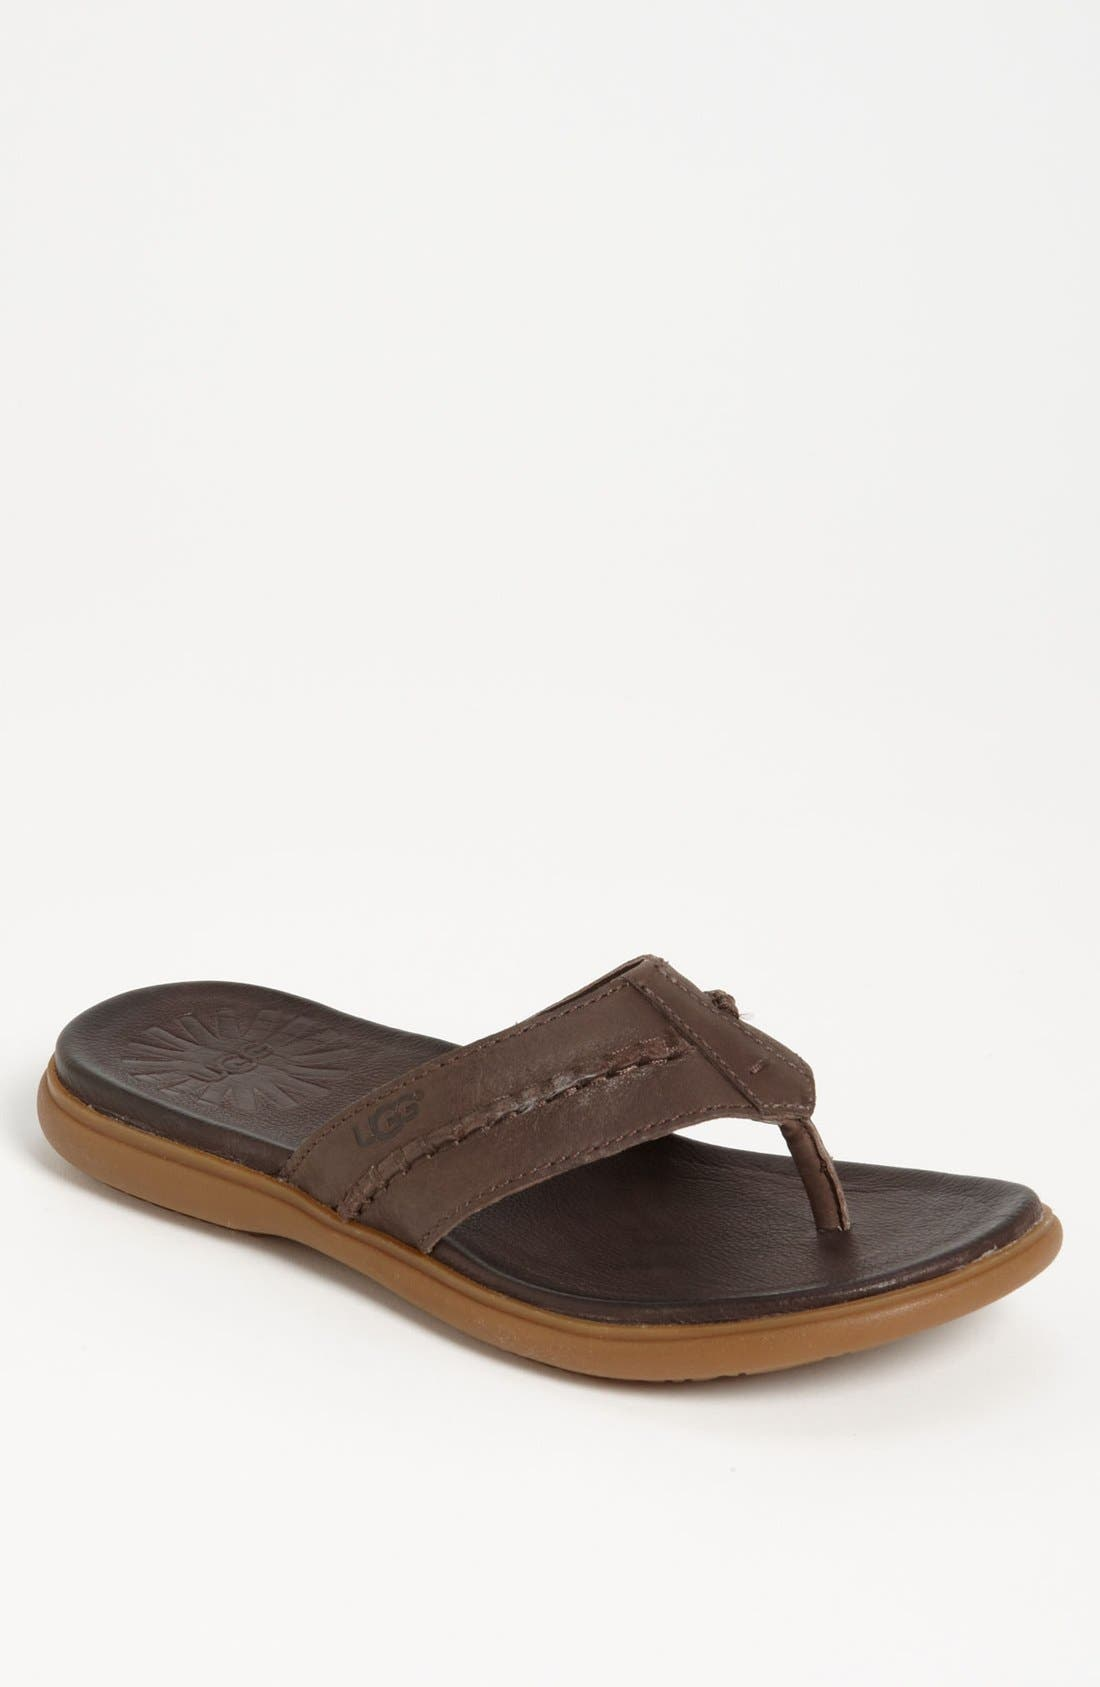 Alternate Image 1 Selected - UGG® Australia 'Hegger' Flip Flop (Men)